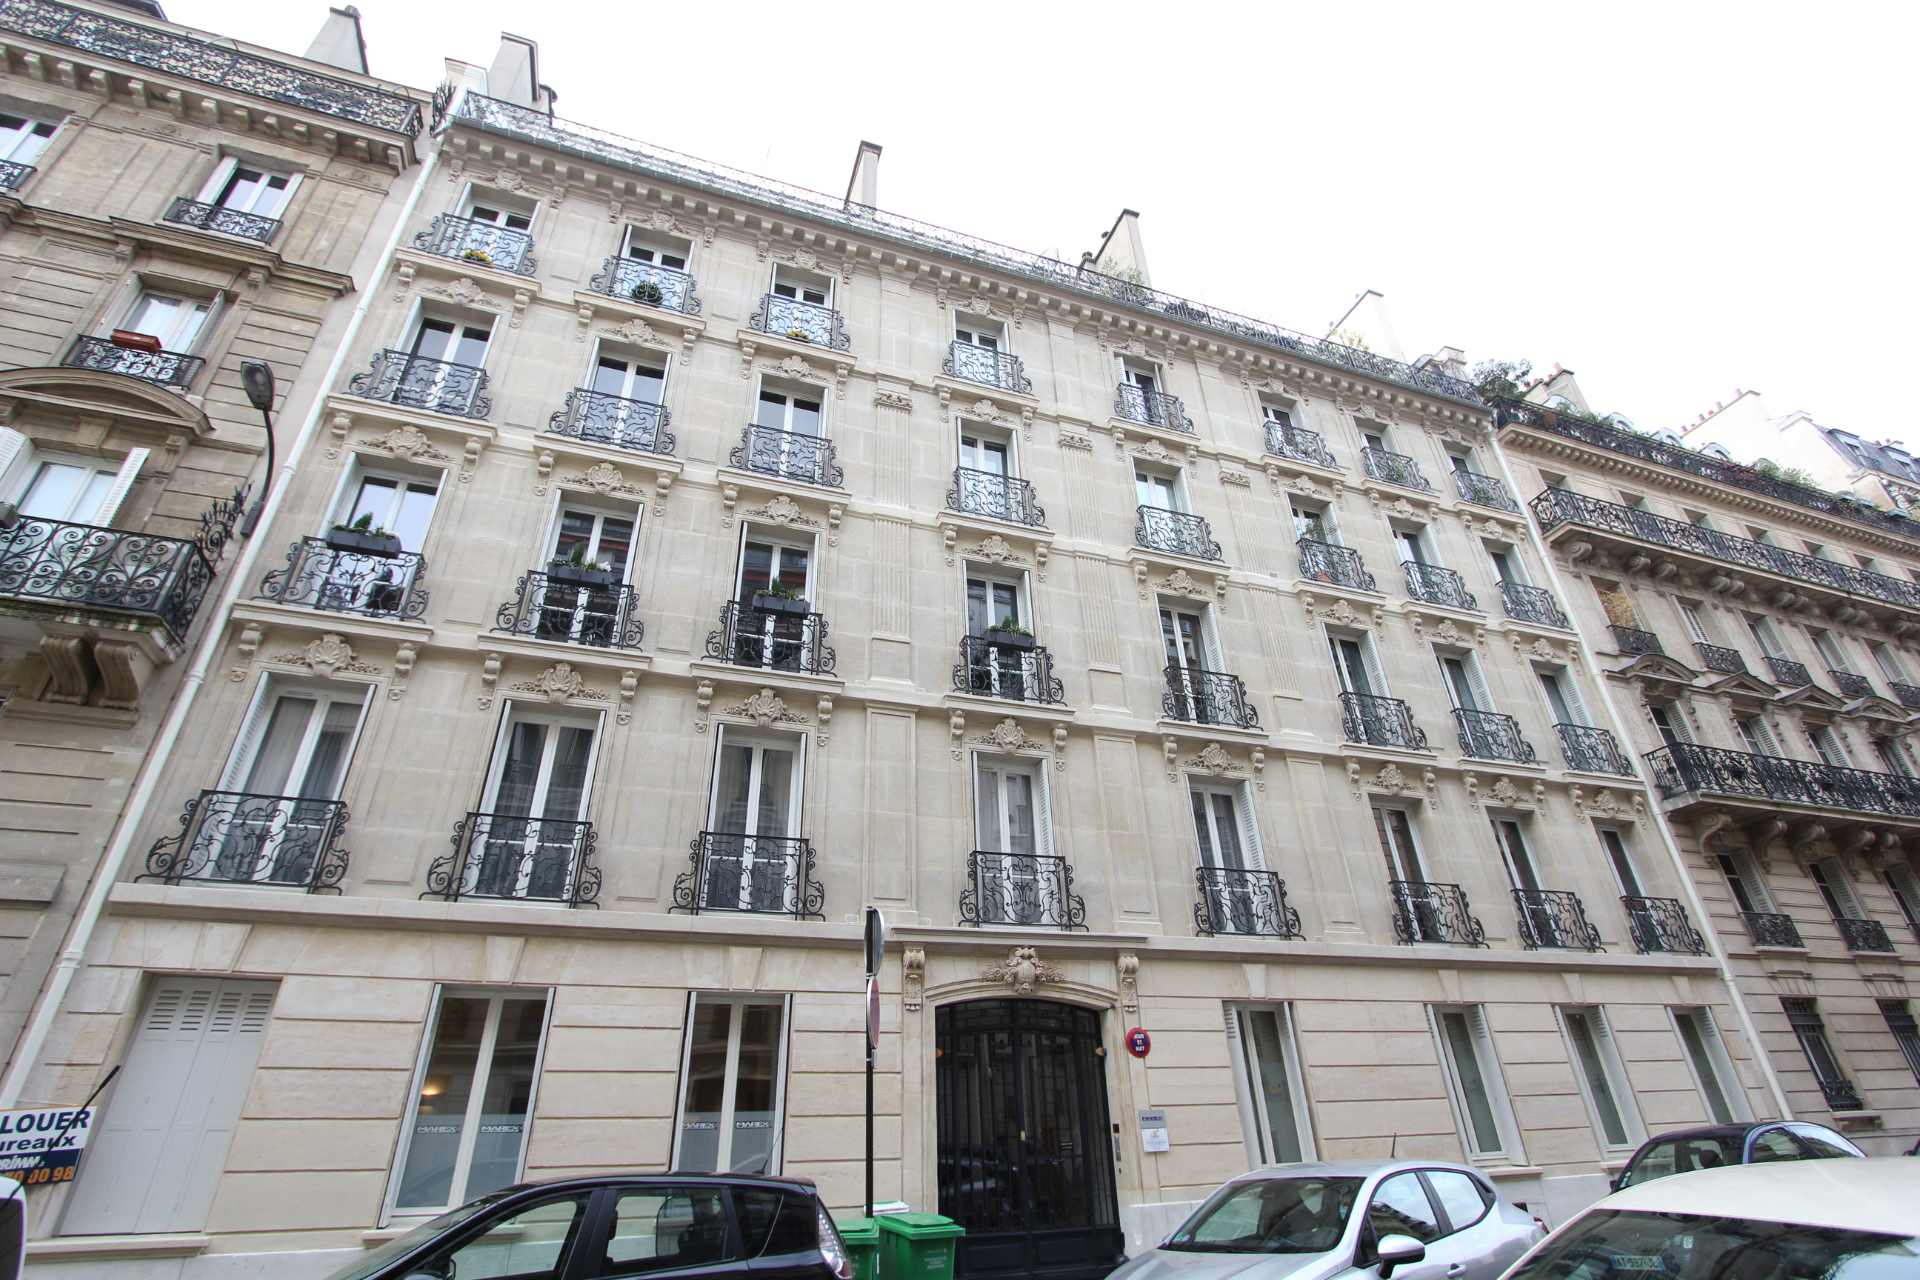 District Europe (rue Clapeyron in the 8th arrondissement), Legally launched studio of 9.88 m² Law Carrez located in a beautiful well maintained building 1